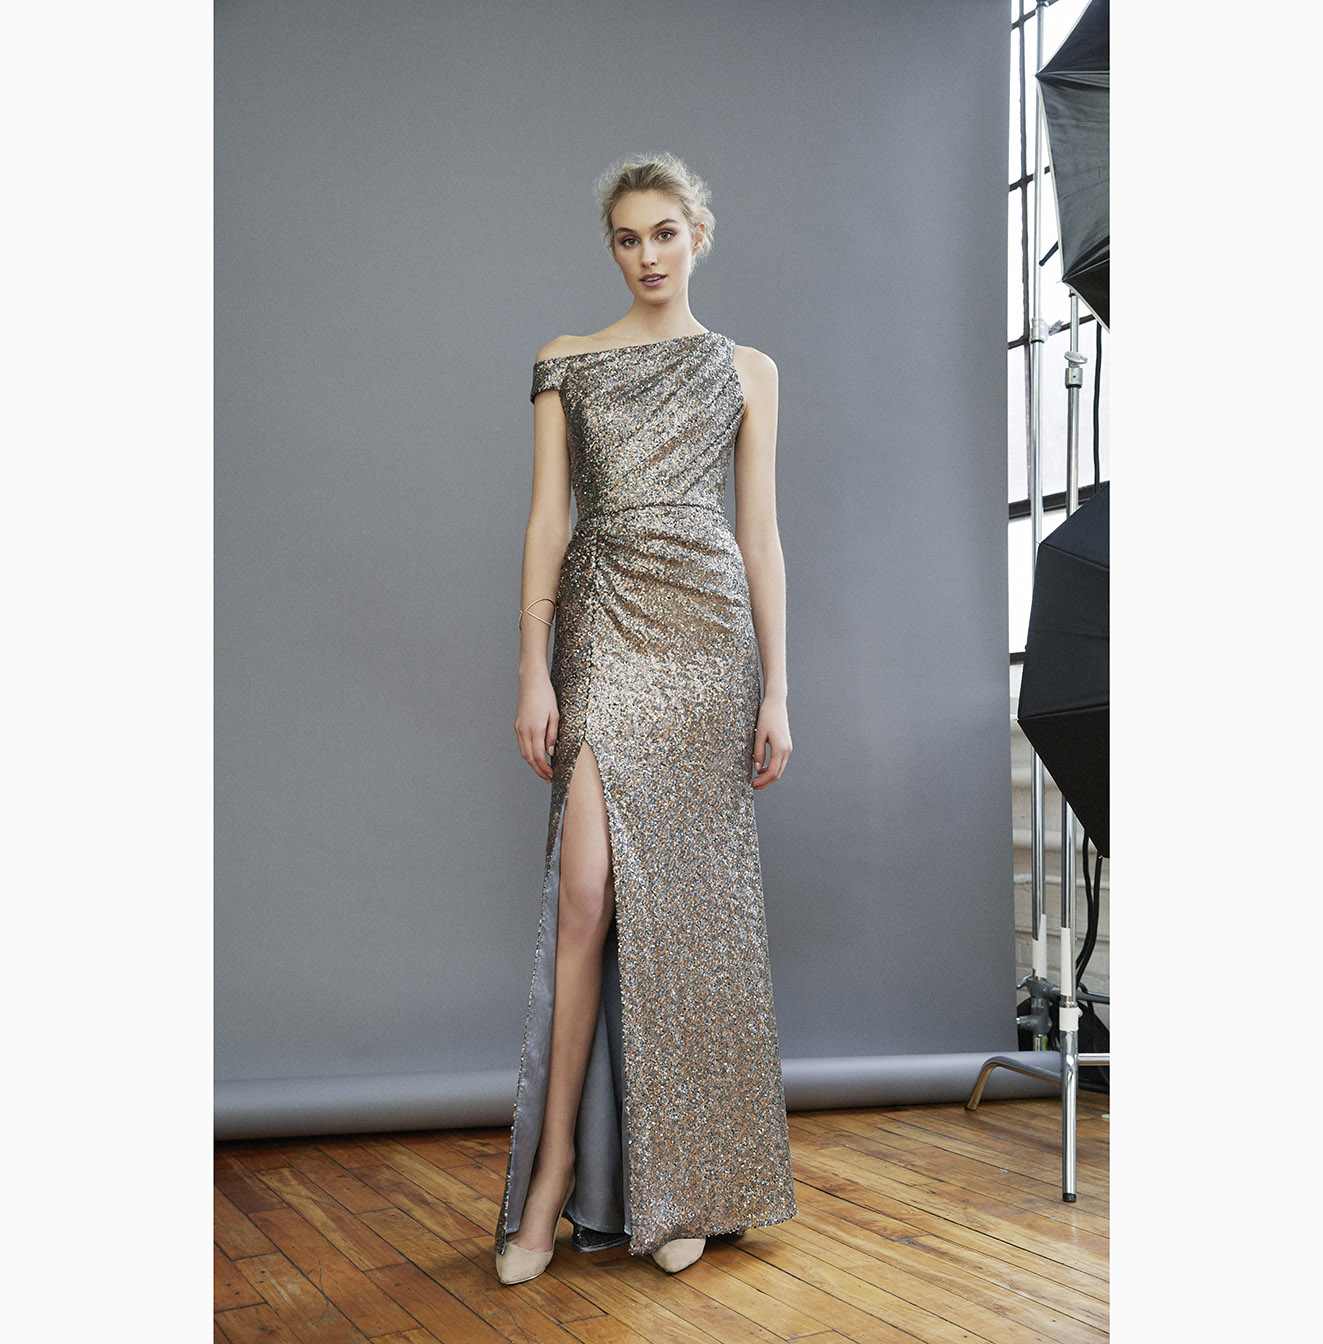 Formal Evening Gowns By Designers: Evening Gowns & Formal Dresses By Designers